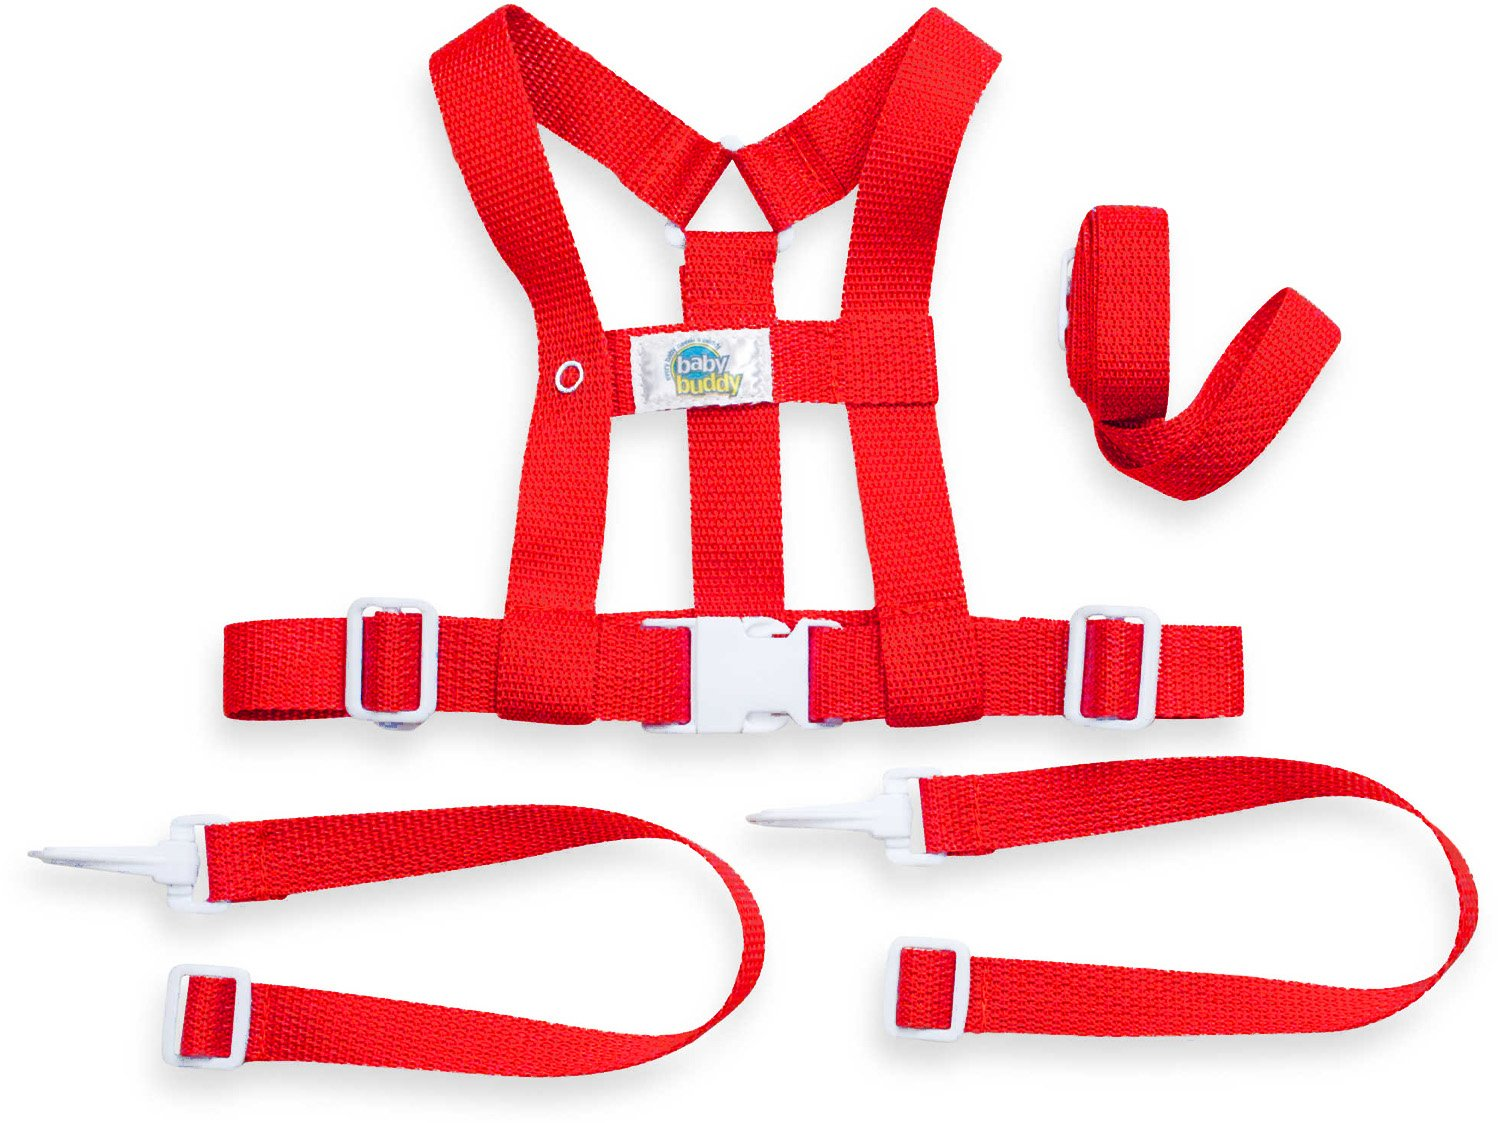 Baby Buddy Deluxe Security Harness, Red Compac Industries 00172R